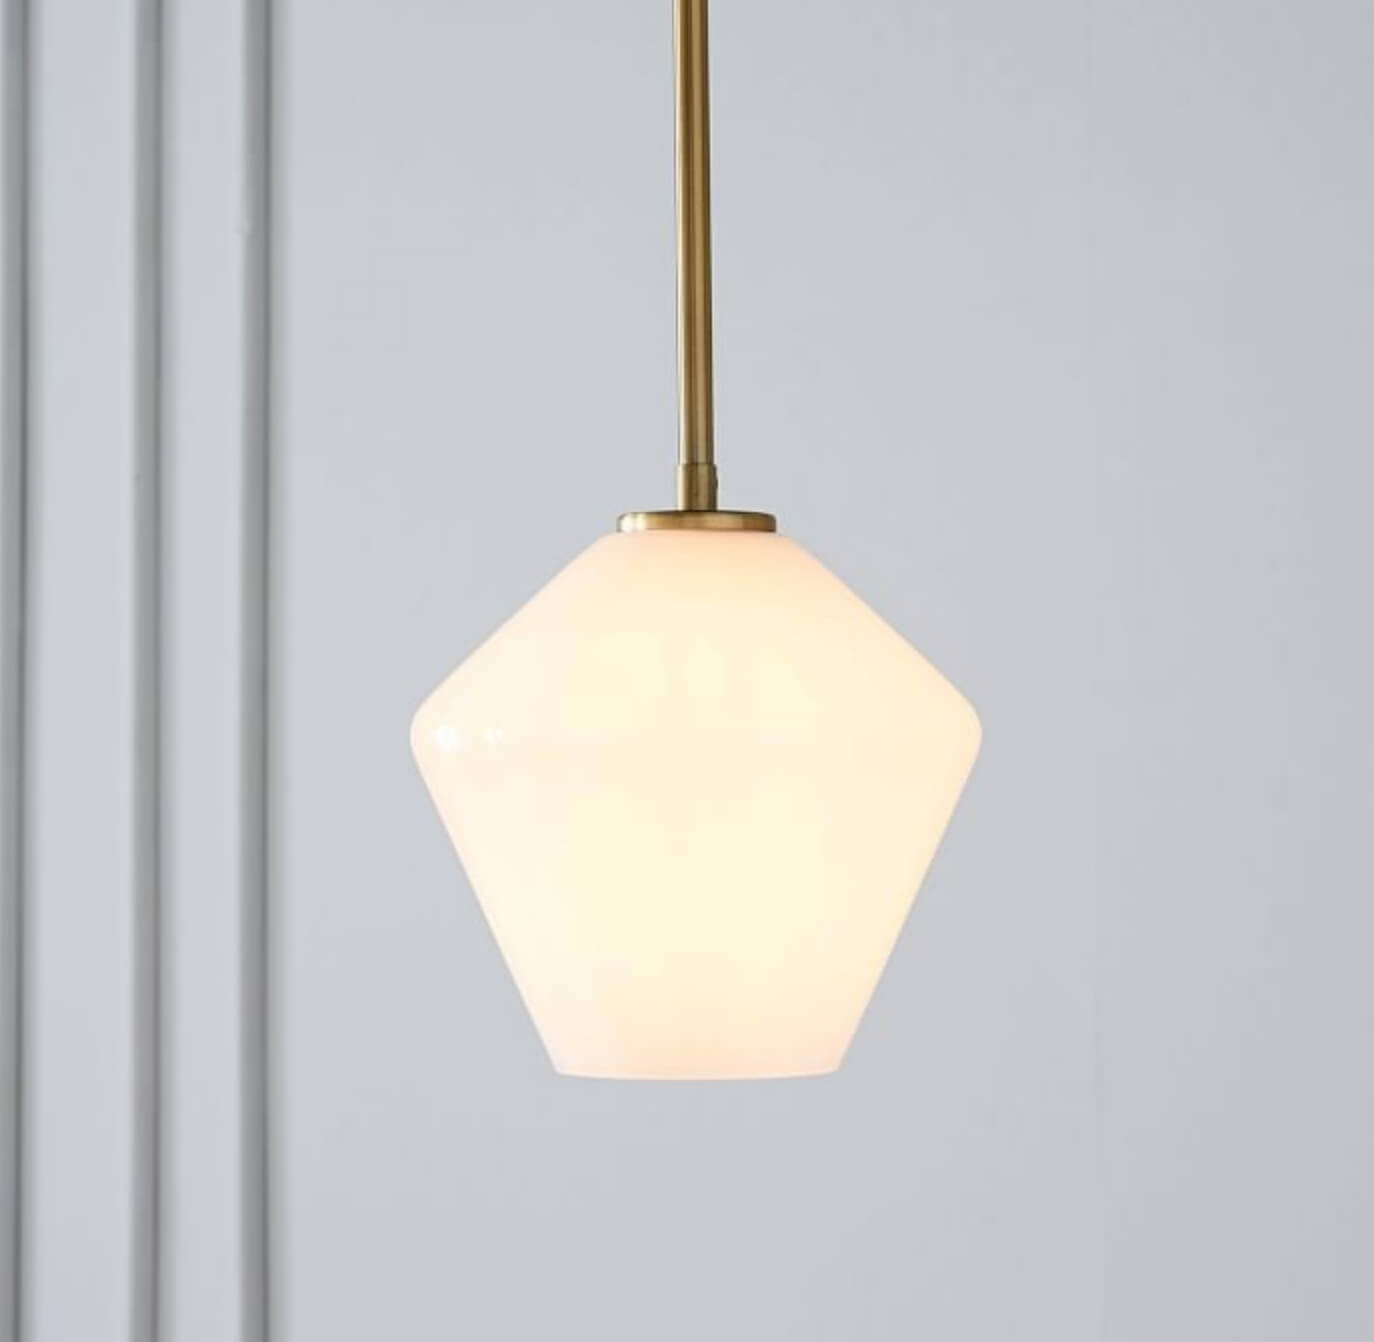 Soft Bedside Pendant Light